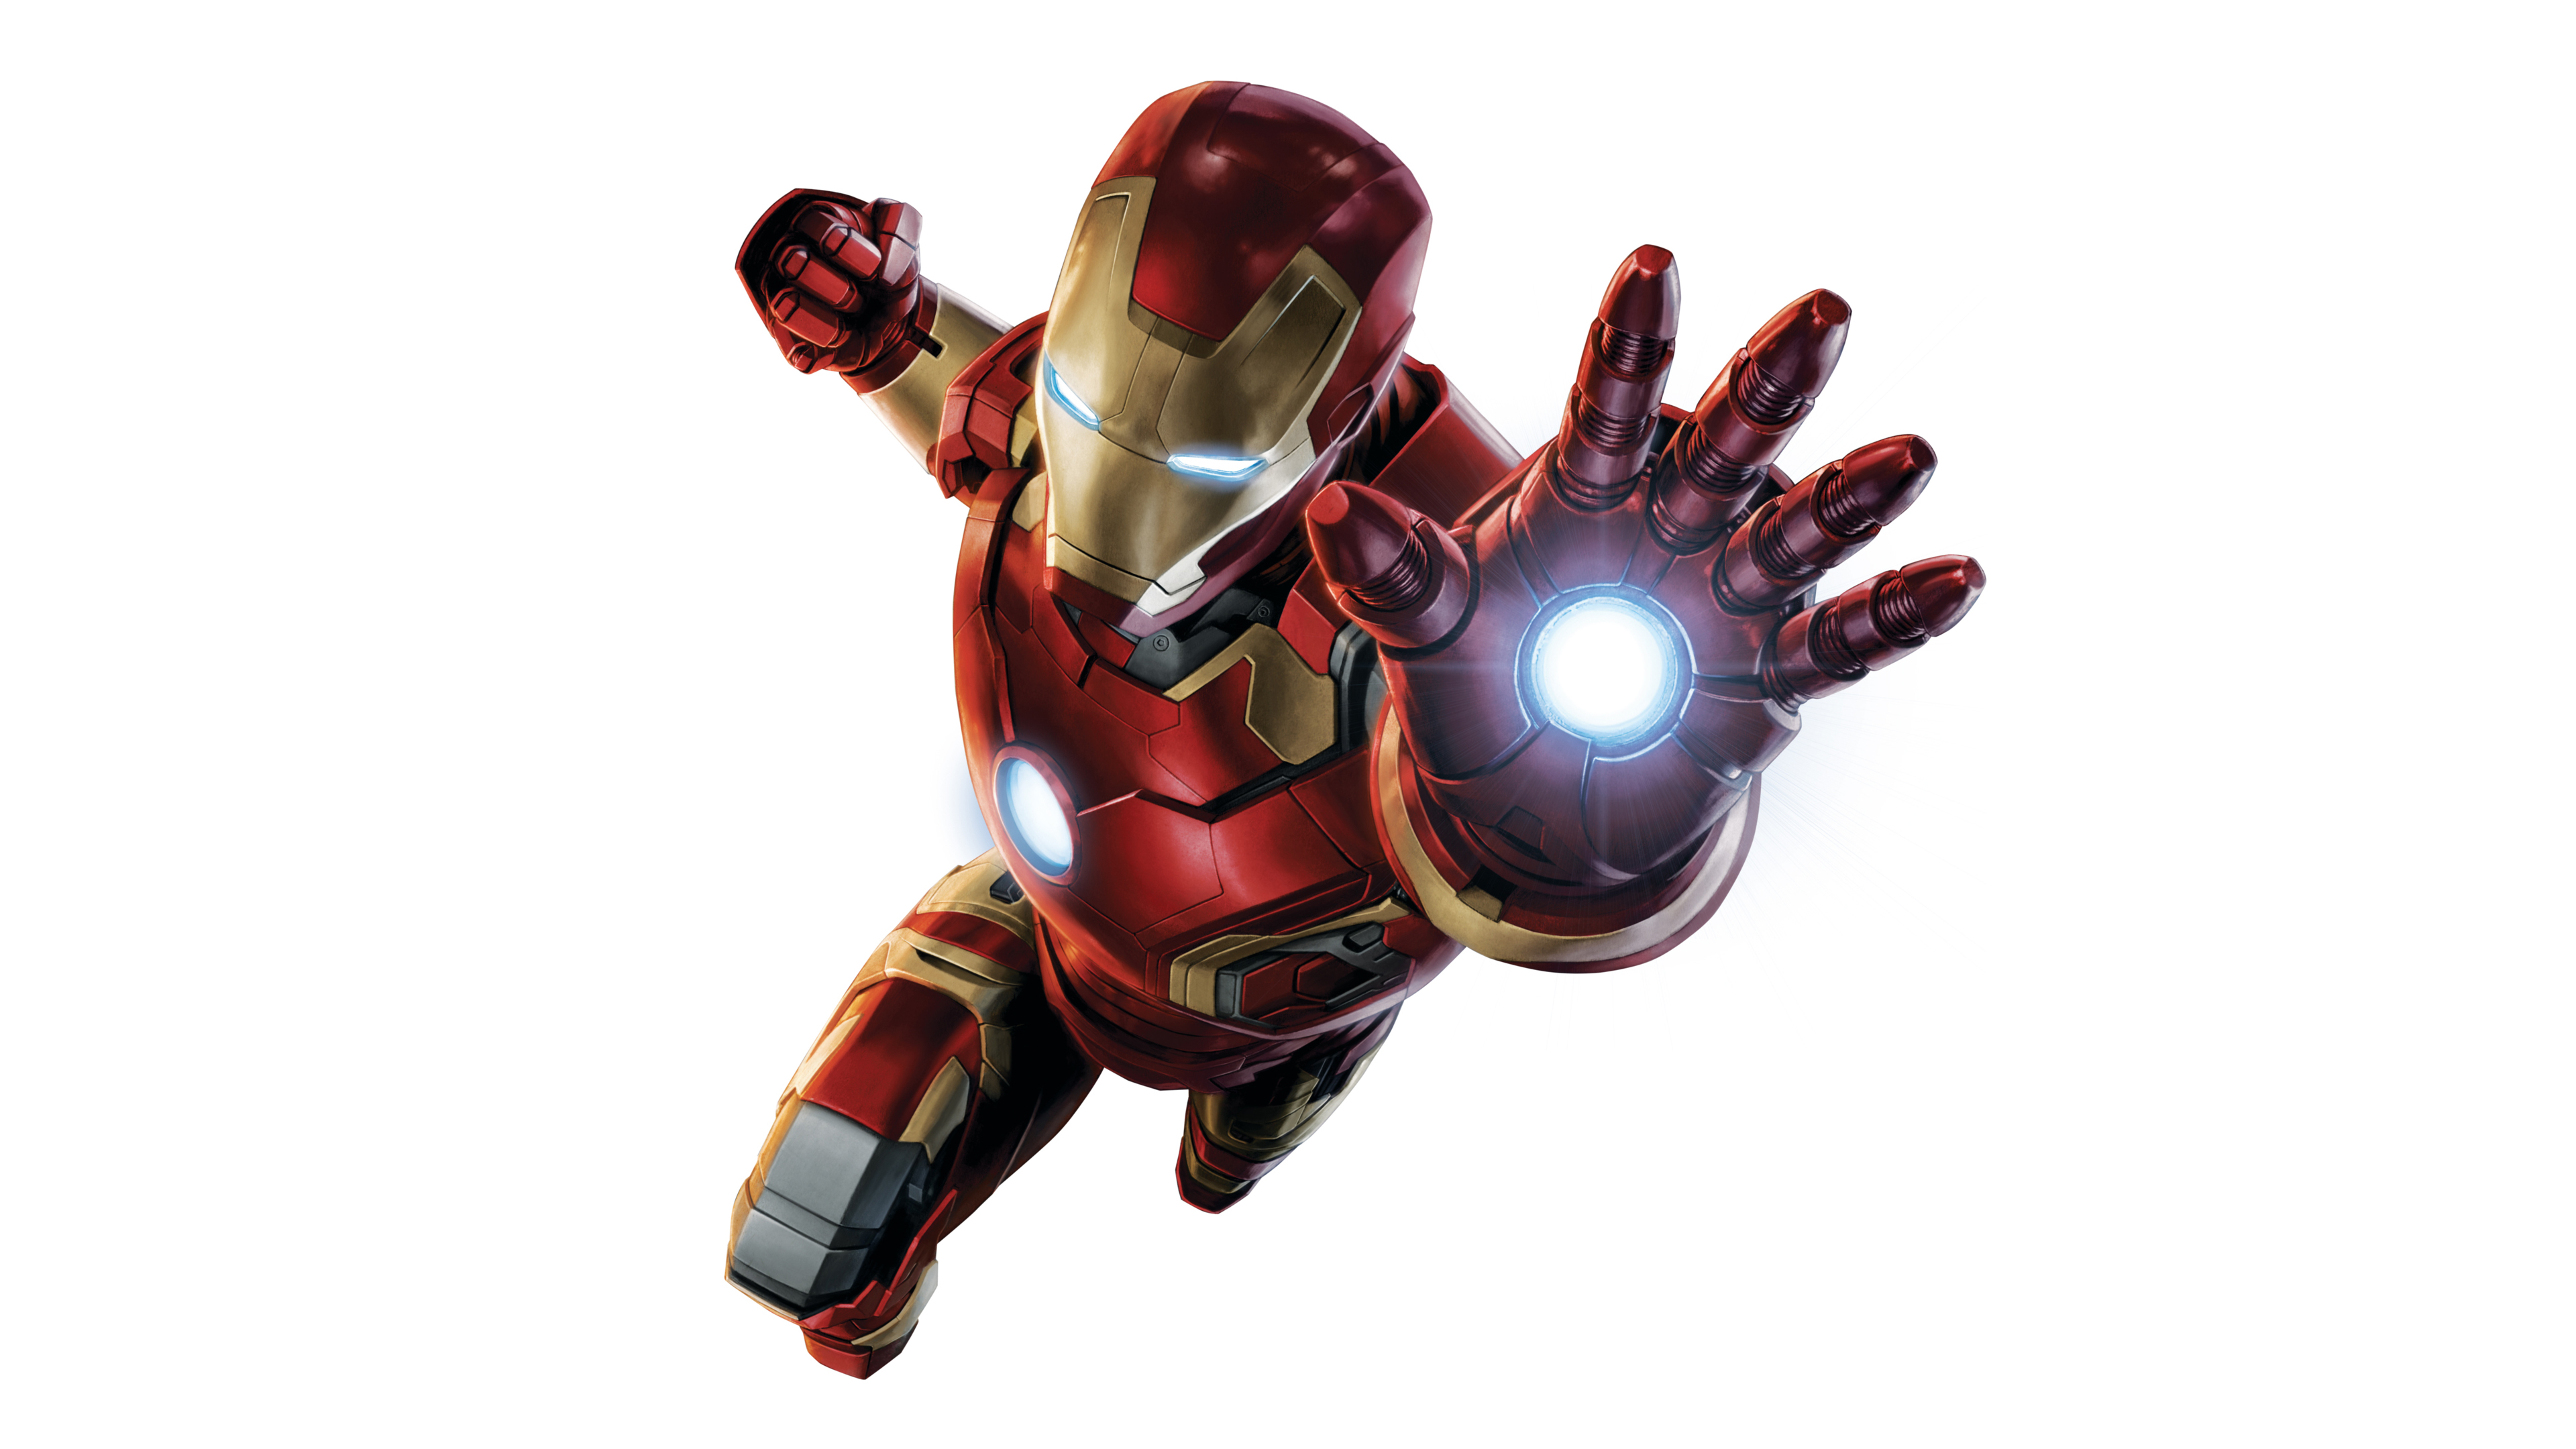 Iron man 4k 2017 hd superheroes 4k wallpapers images backgrounds photos and pictures - Iron man wallpaper 4k ...